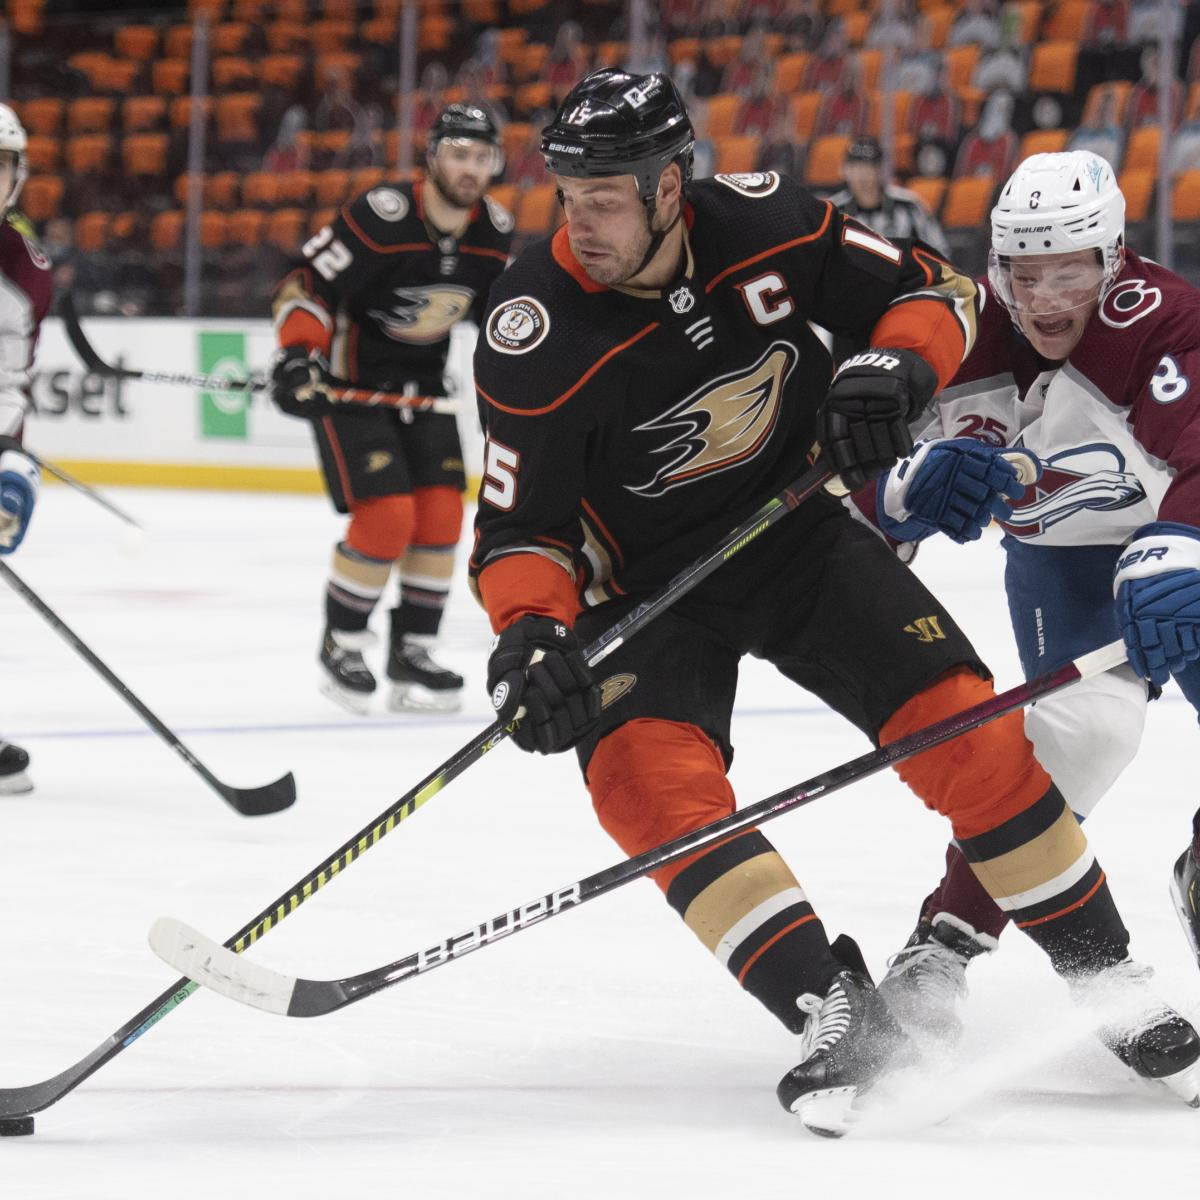 NHL Rumors: Analyzing Buzz Surrounding Ryan Getzlaf and Alex Goligoski